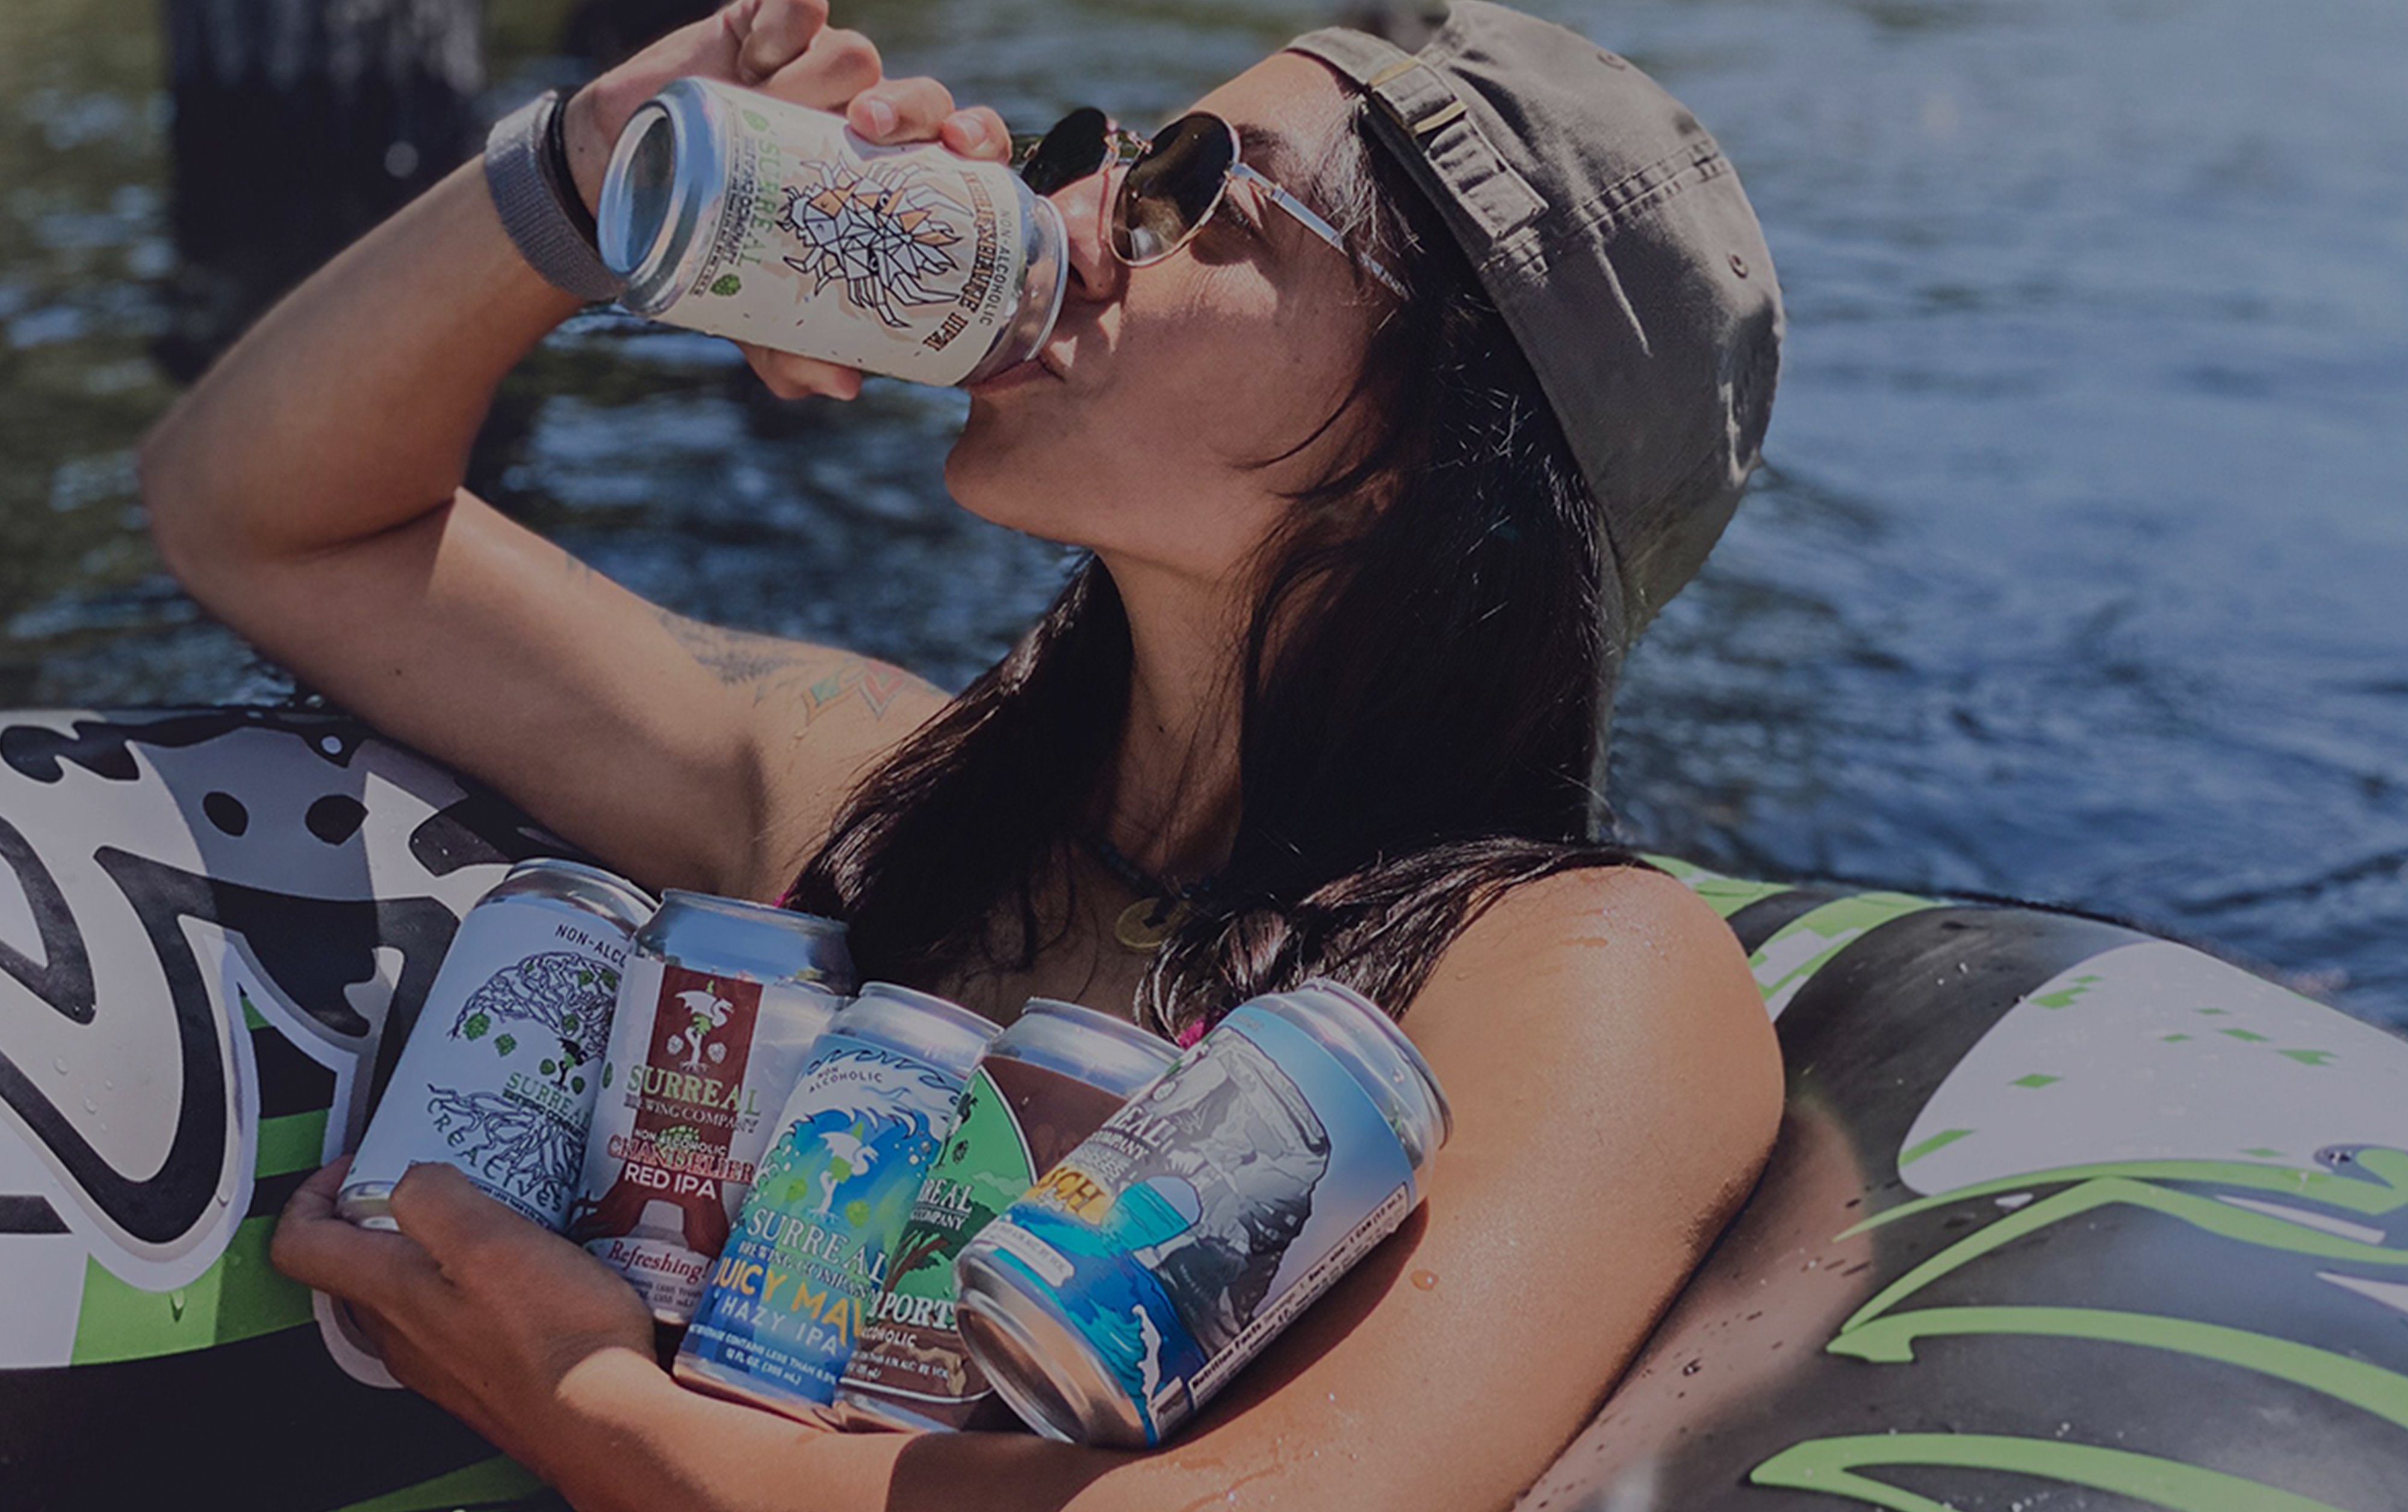 Girl enjoying Surreal Brewing Craft non-alcoholic beer on the river